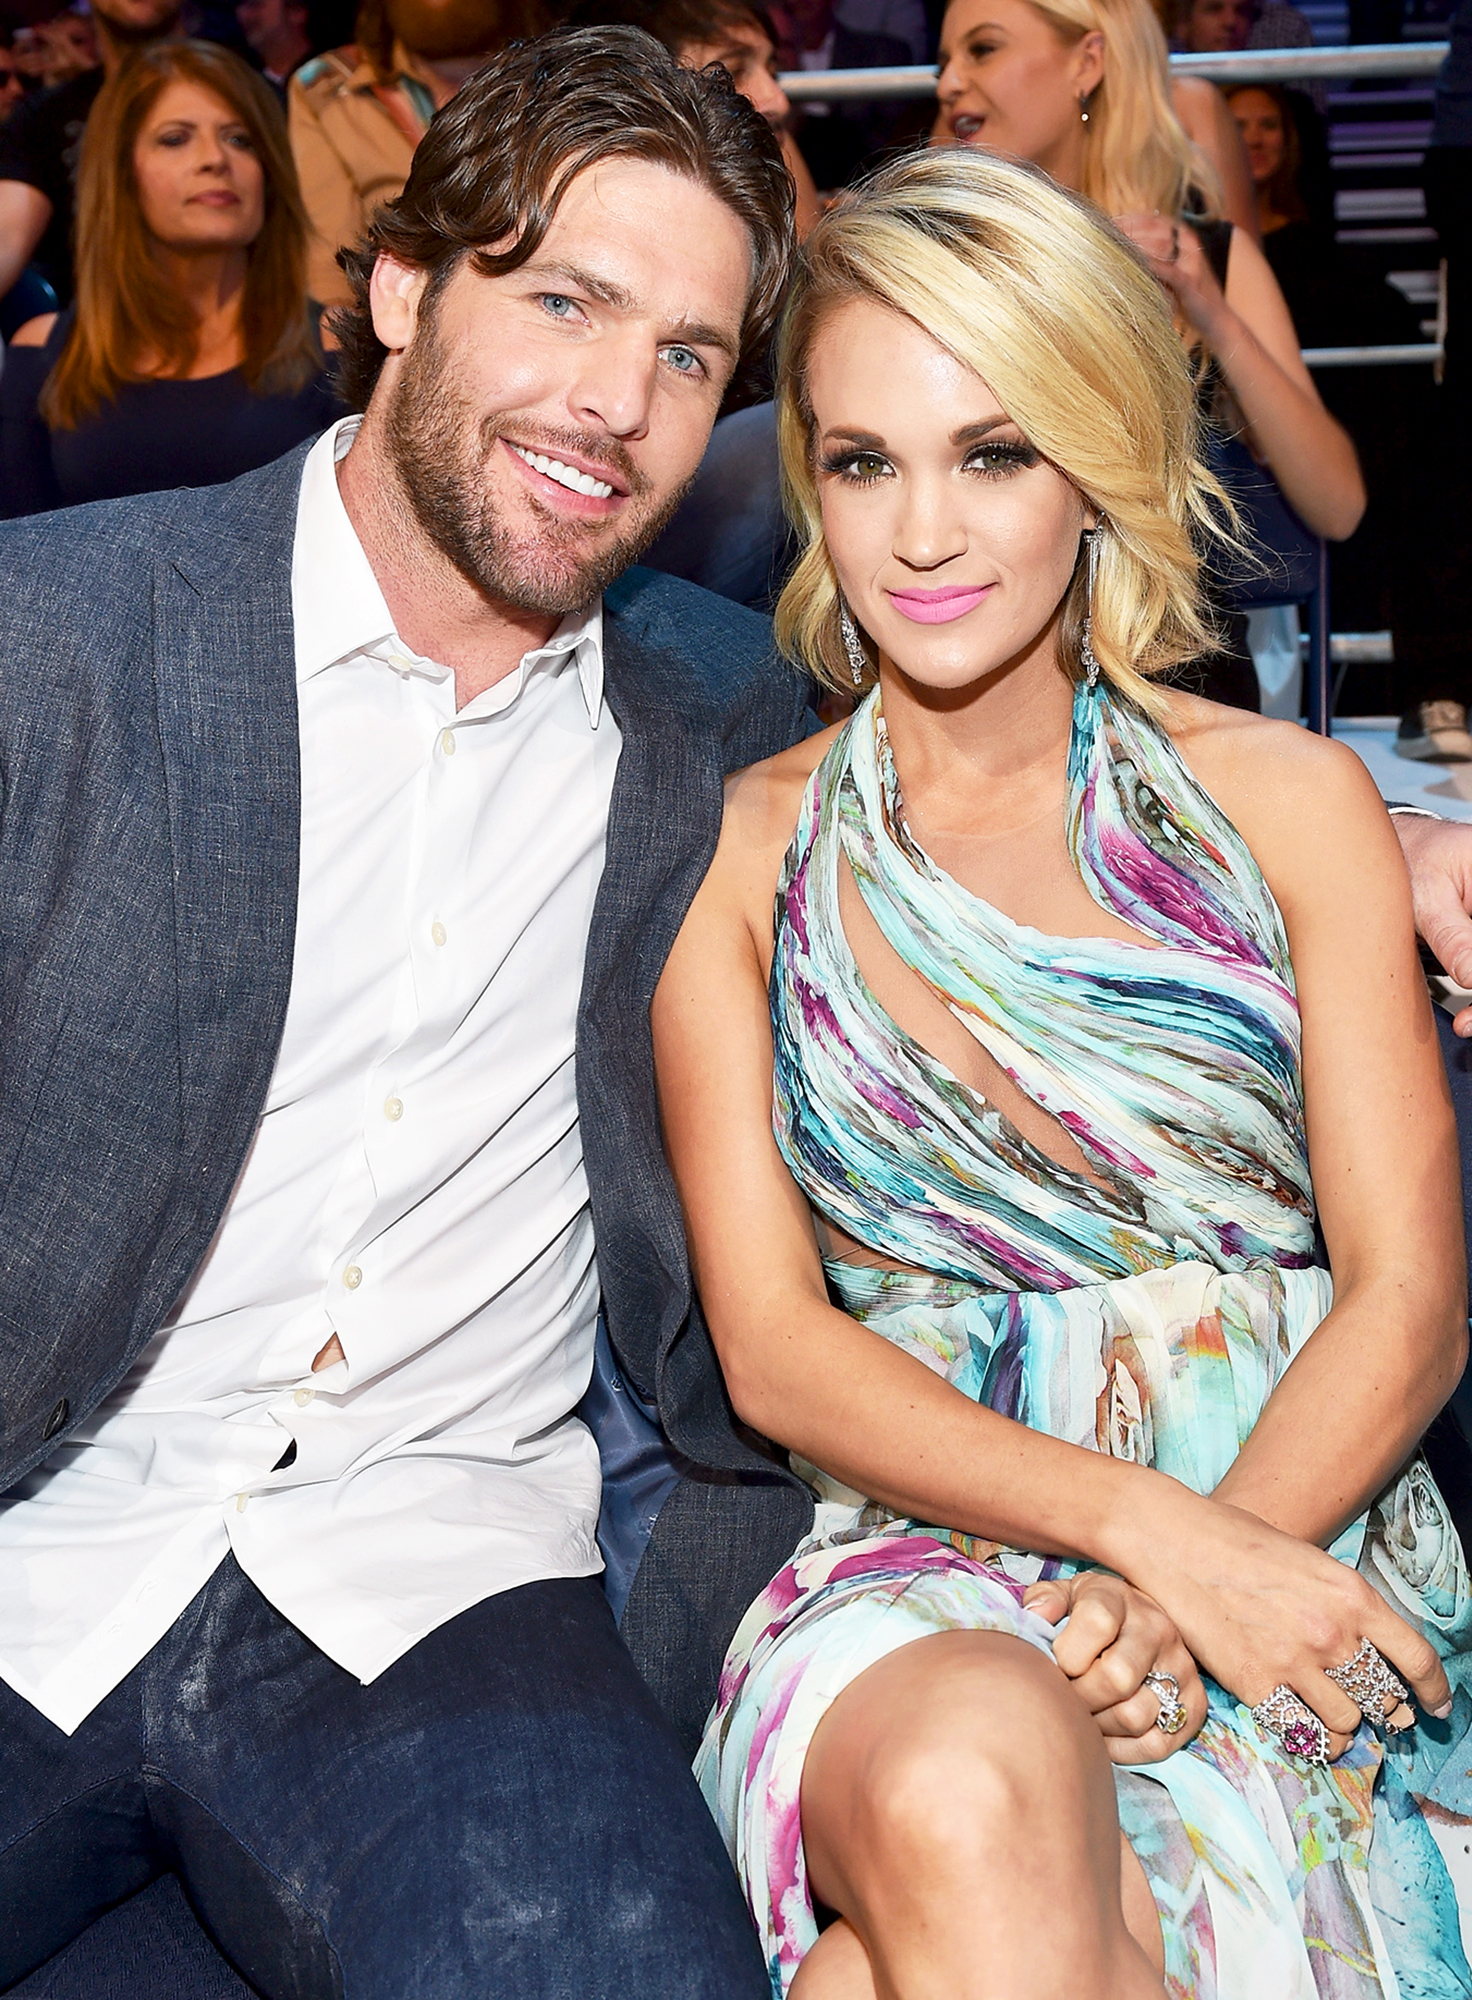 Who is carrie underwood hookup now